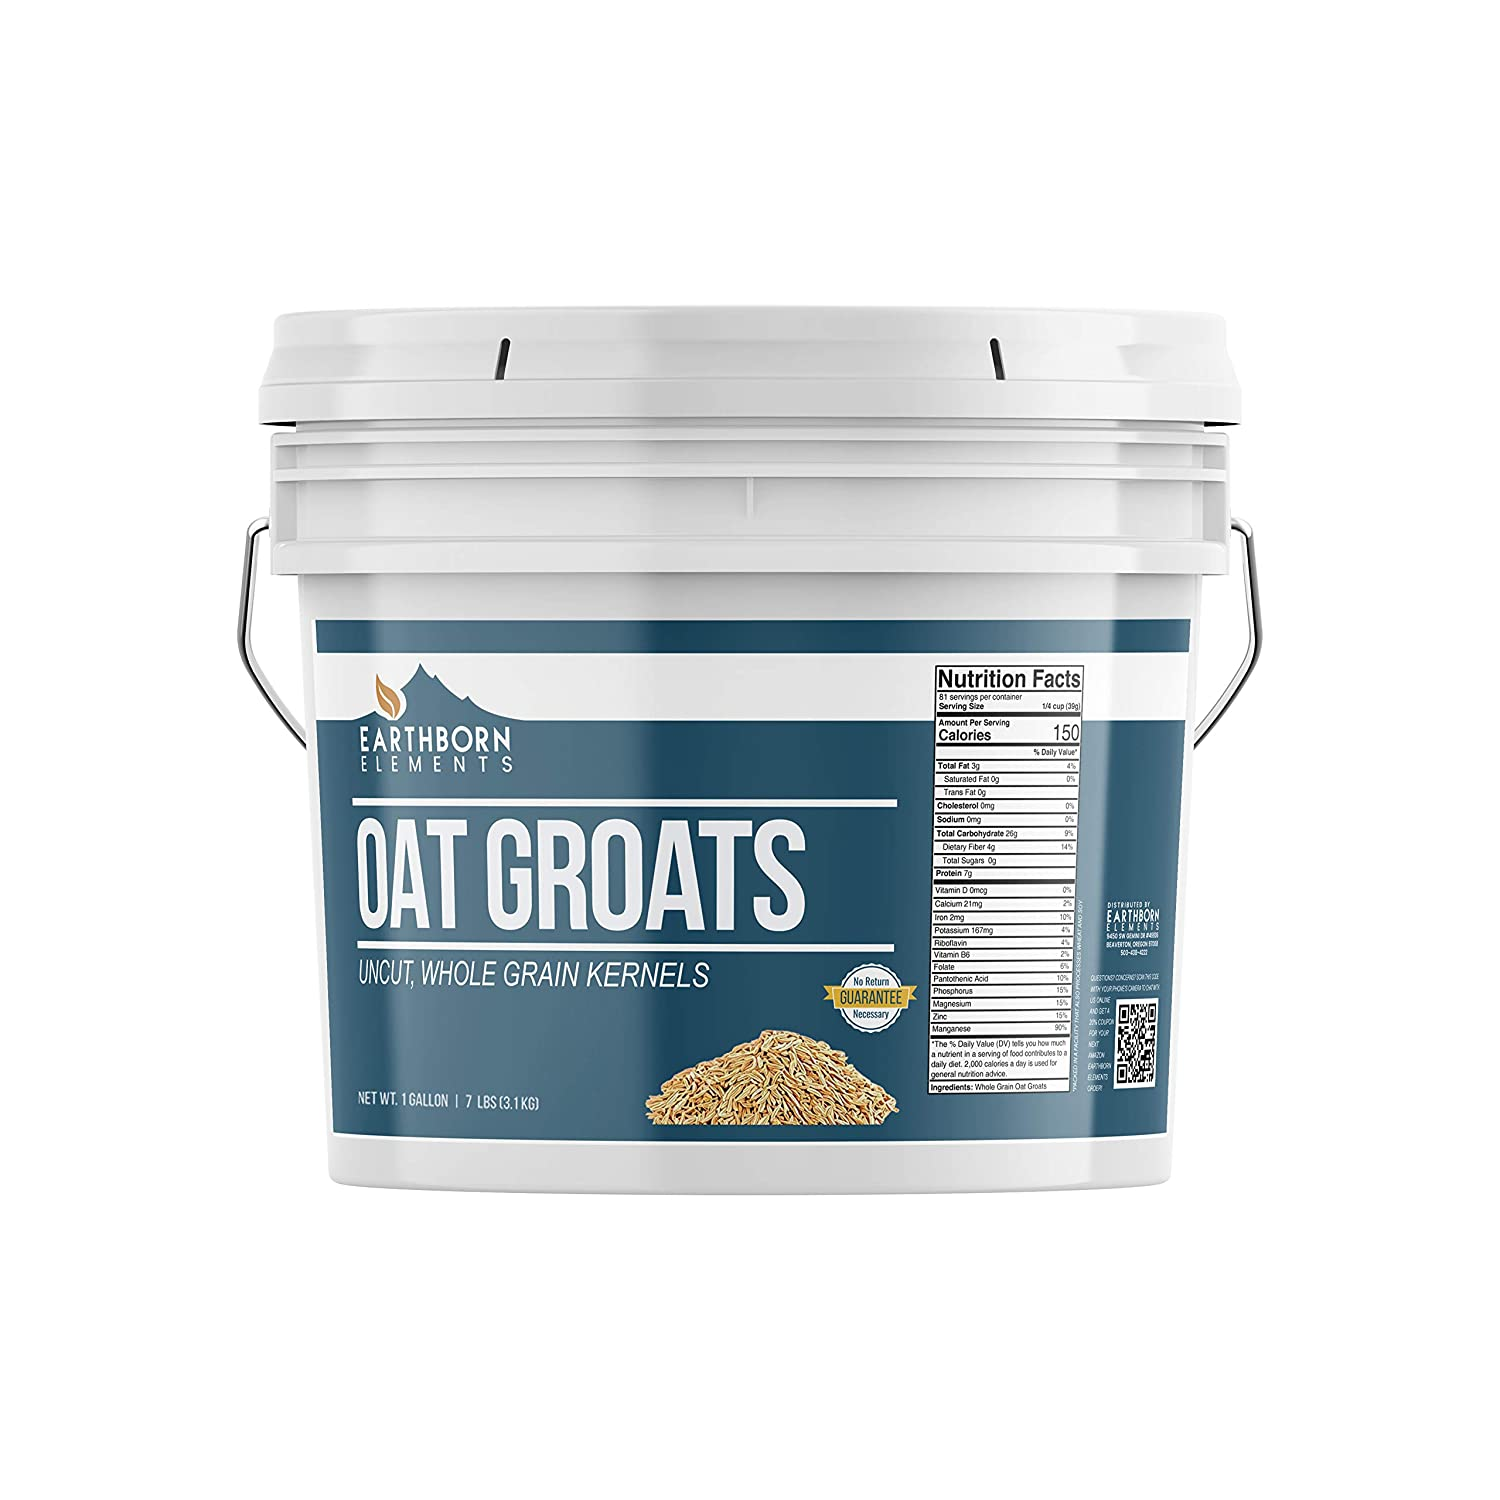 Oat Groats, 1 Gallon Bucket (7 LBS) by Earthborn Elements, High Quality & Uncut, Whole & Hulless Oat Kernels, Unprocessed & Untreated, High-in-Fiber, Resealable Bucket